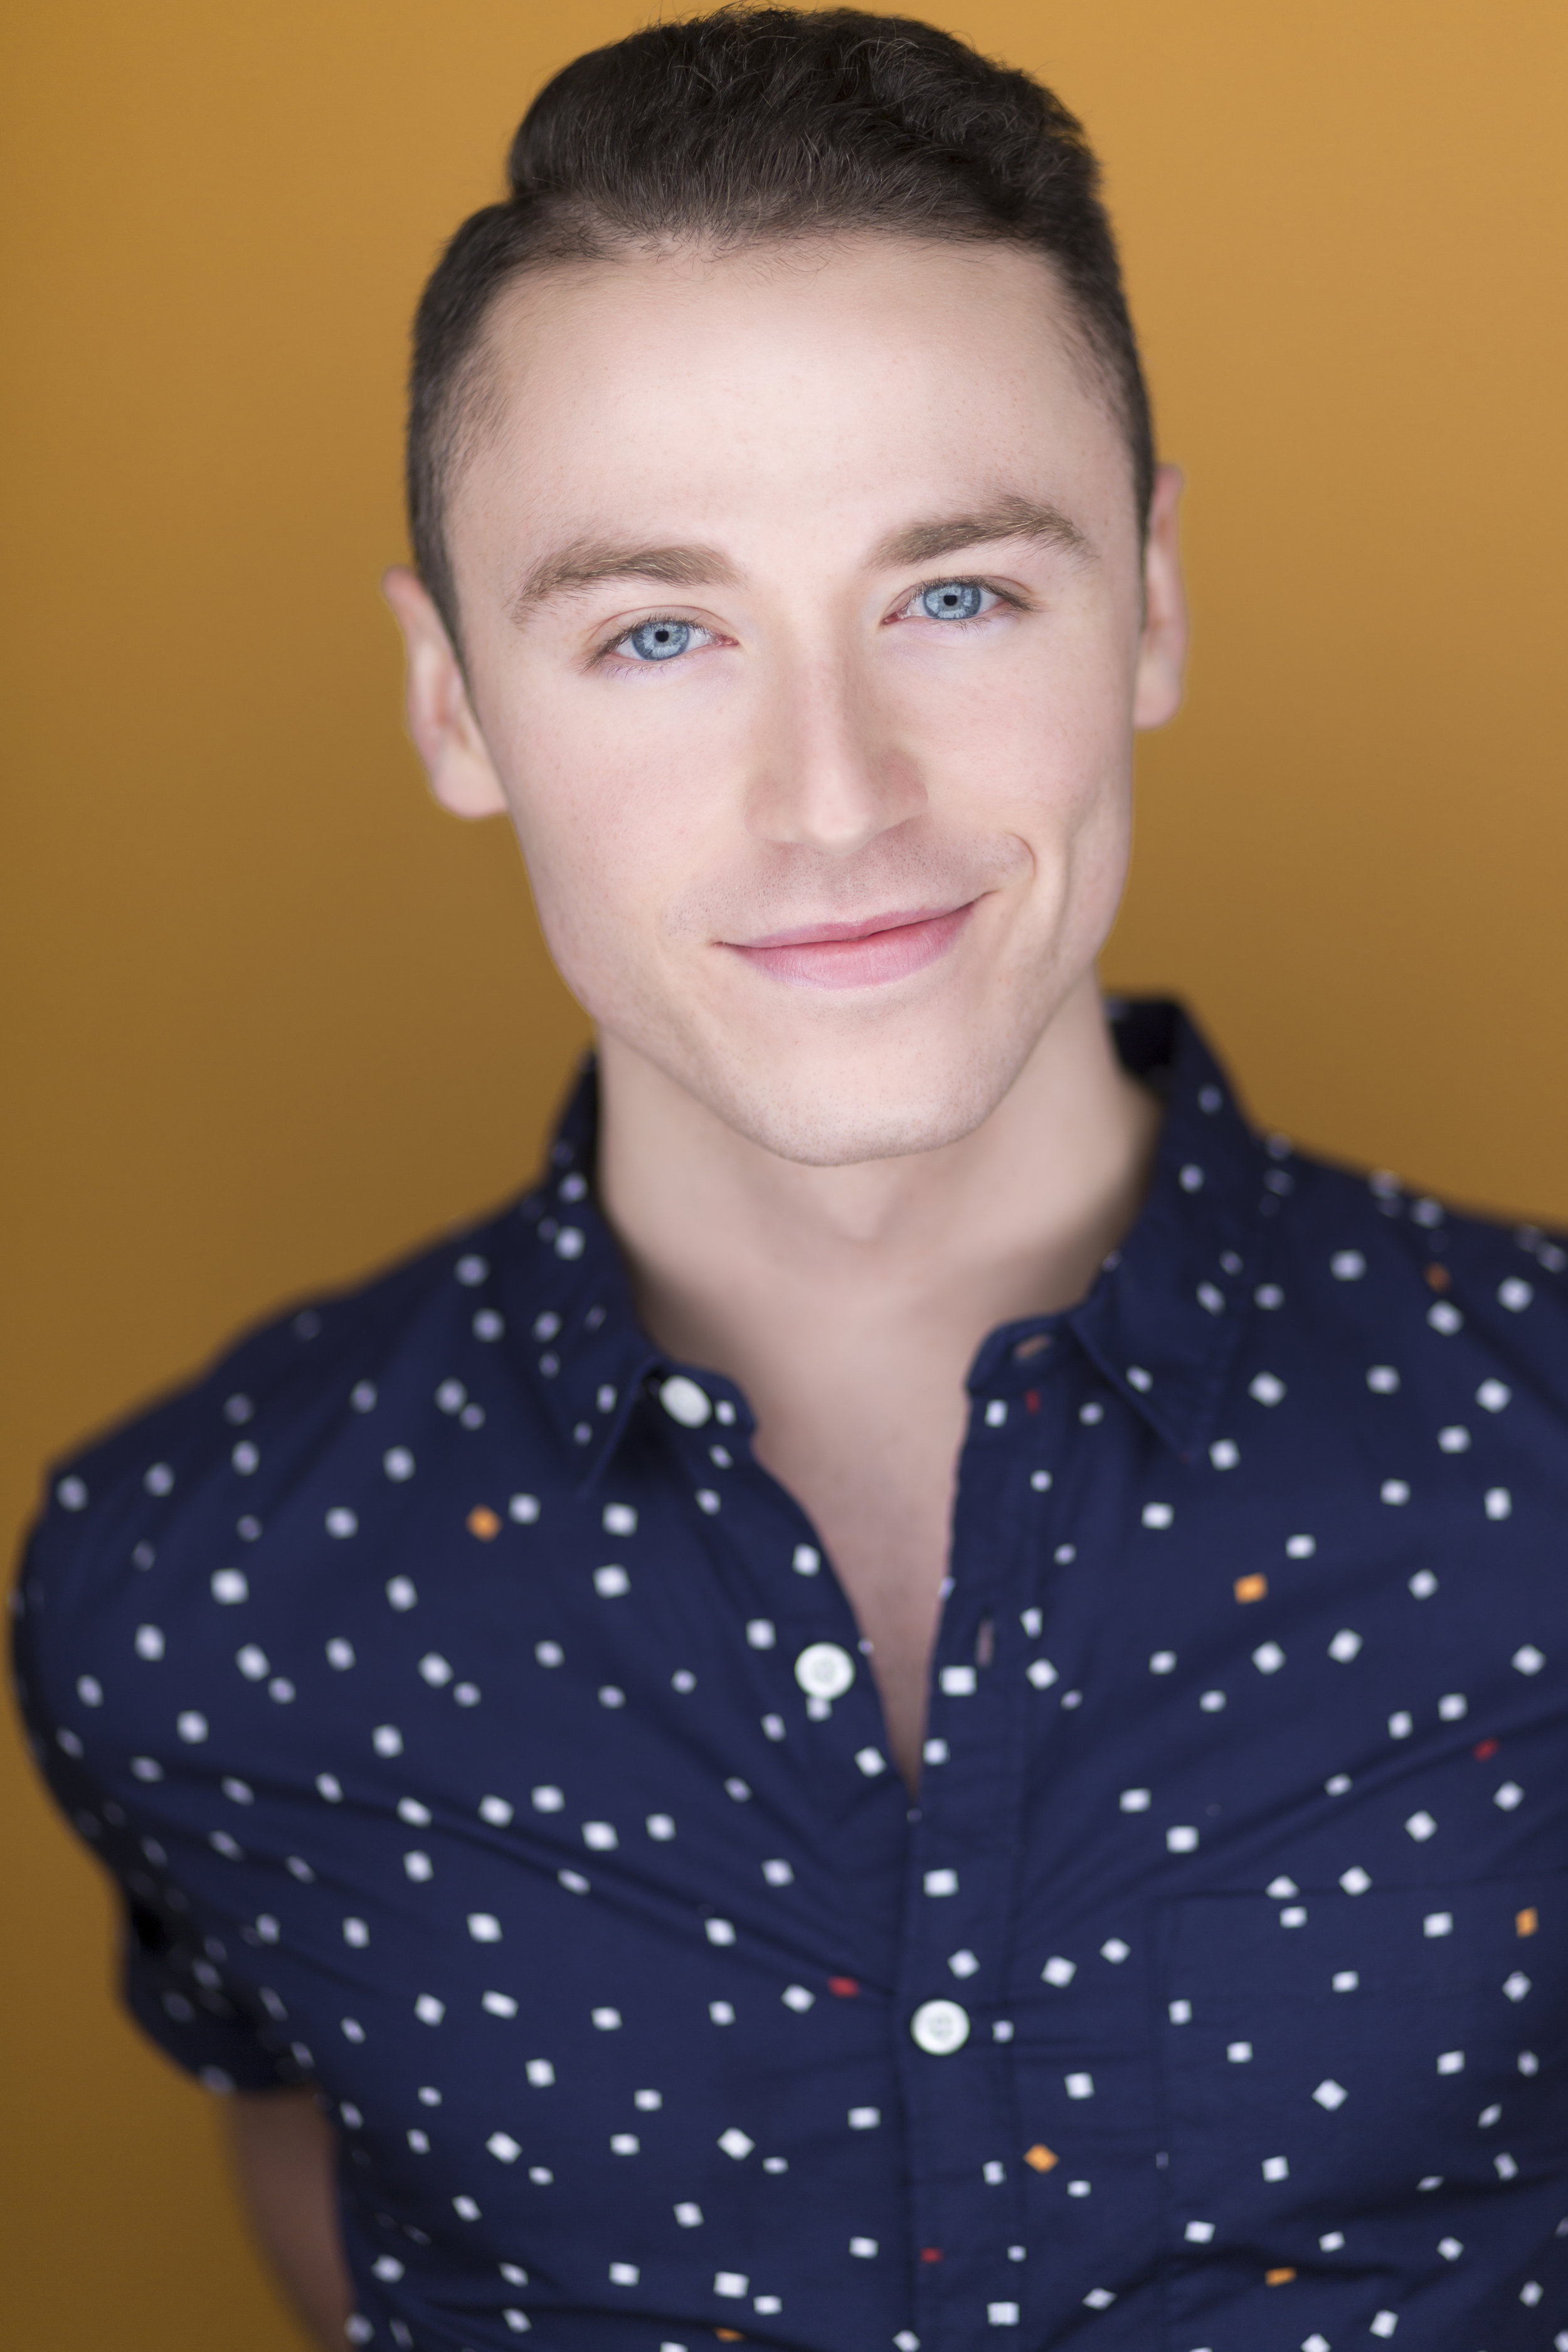 Kyle - is a Dancer, Singer, Actor based in New York.    A Michigan native, he's a midwesterner at heart.